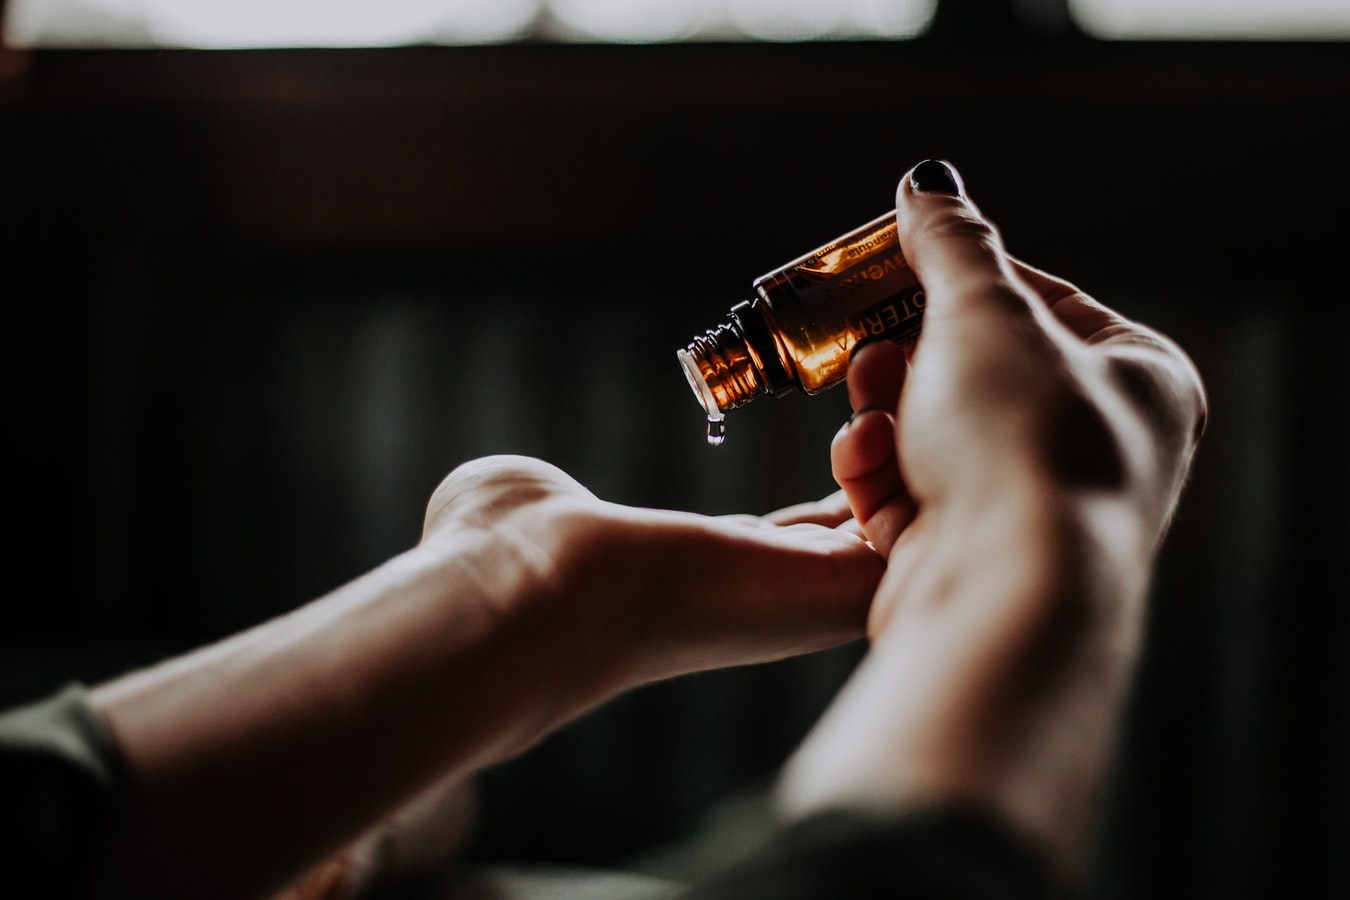 Massaging with essential oils